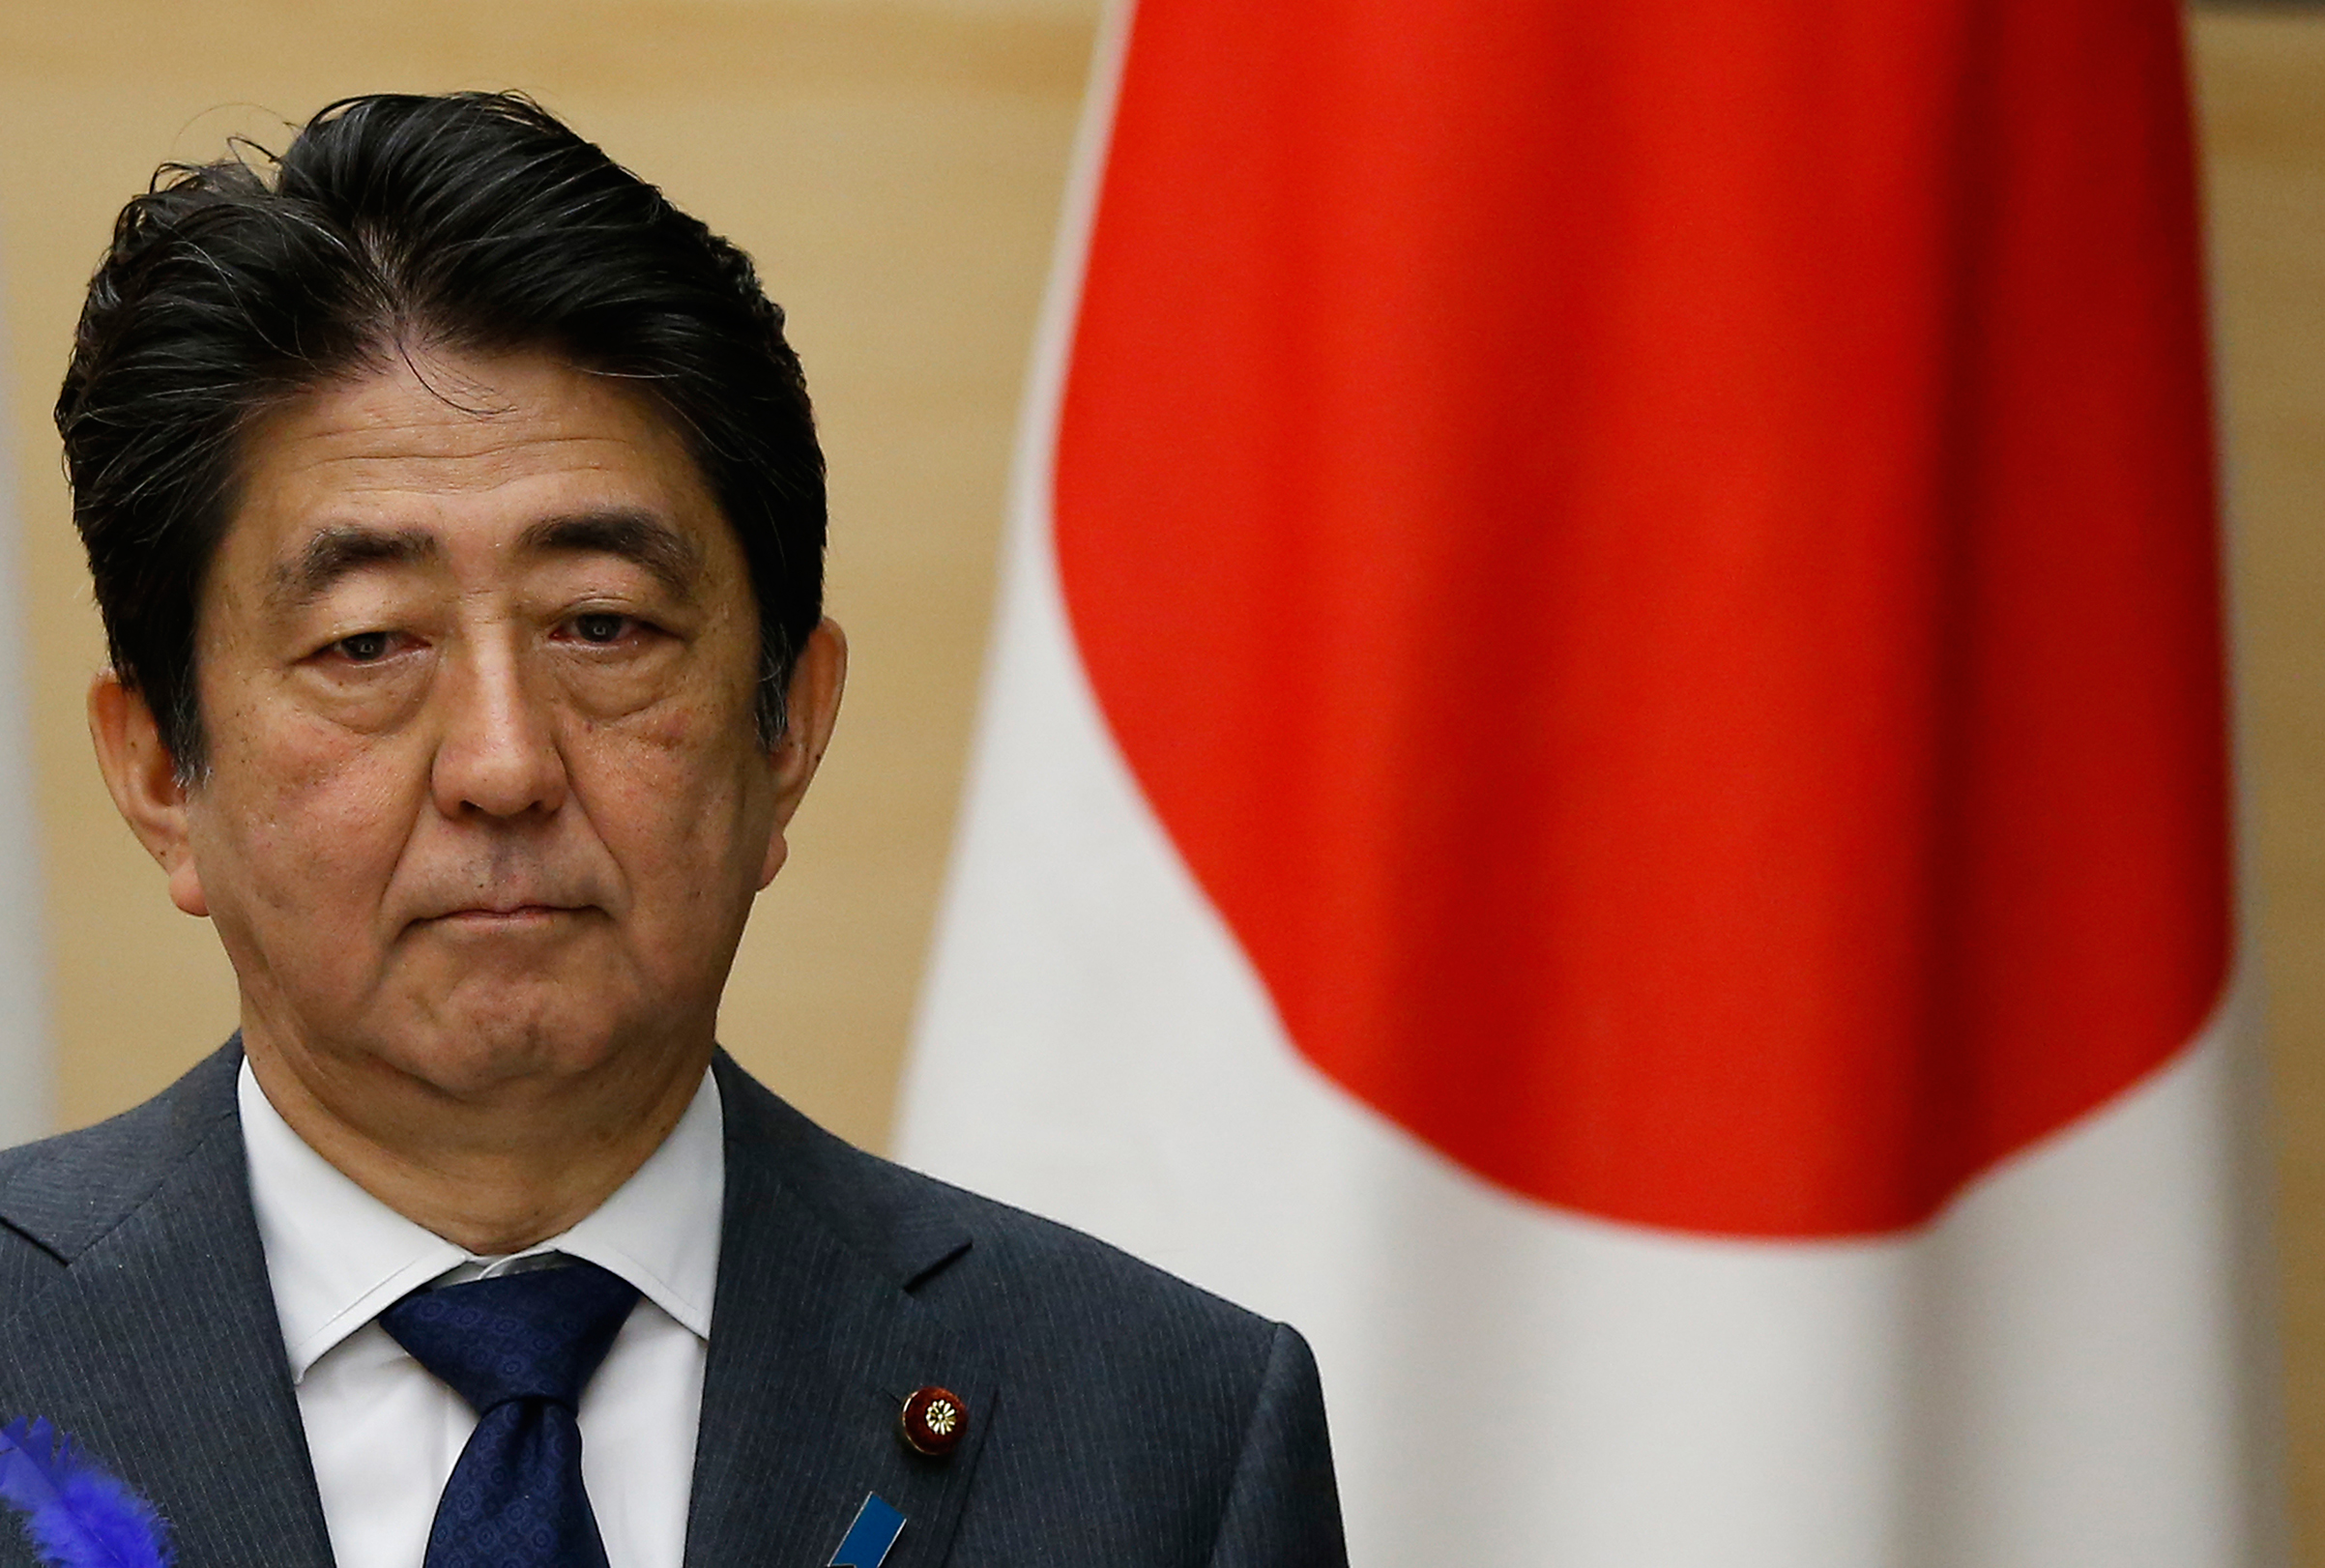 Japanese Prime Minister Shinzo Abe has been tarnished by a string of controversies